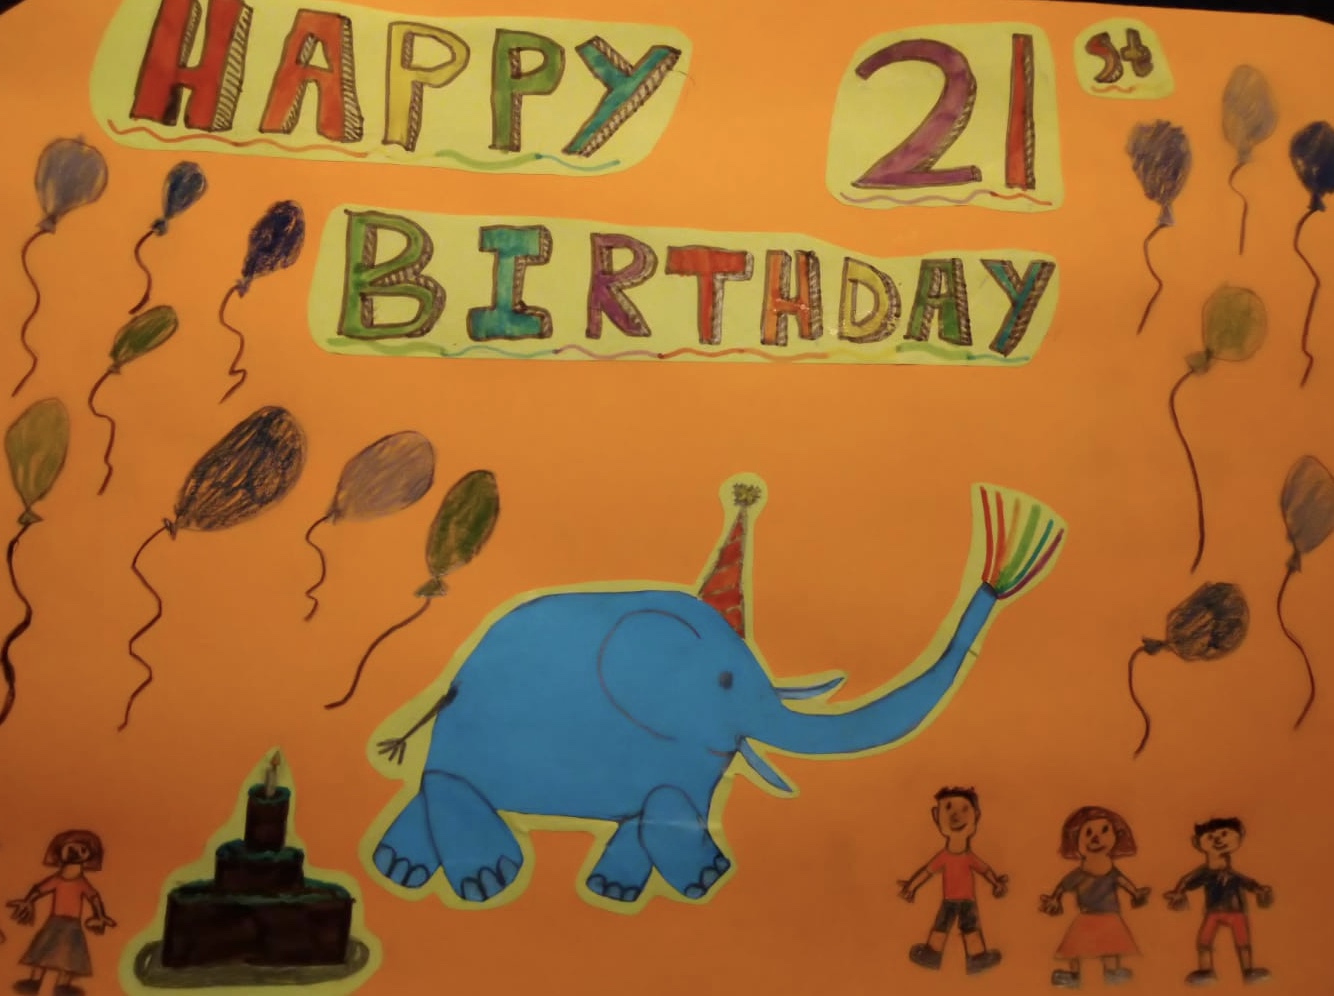 Under 10's entry reading Happy 21st Birthday, with a blue elephant on an orange background